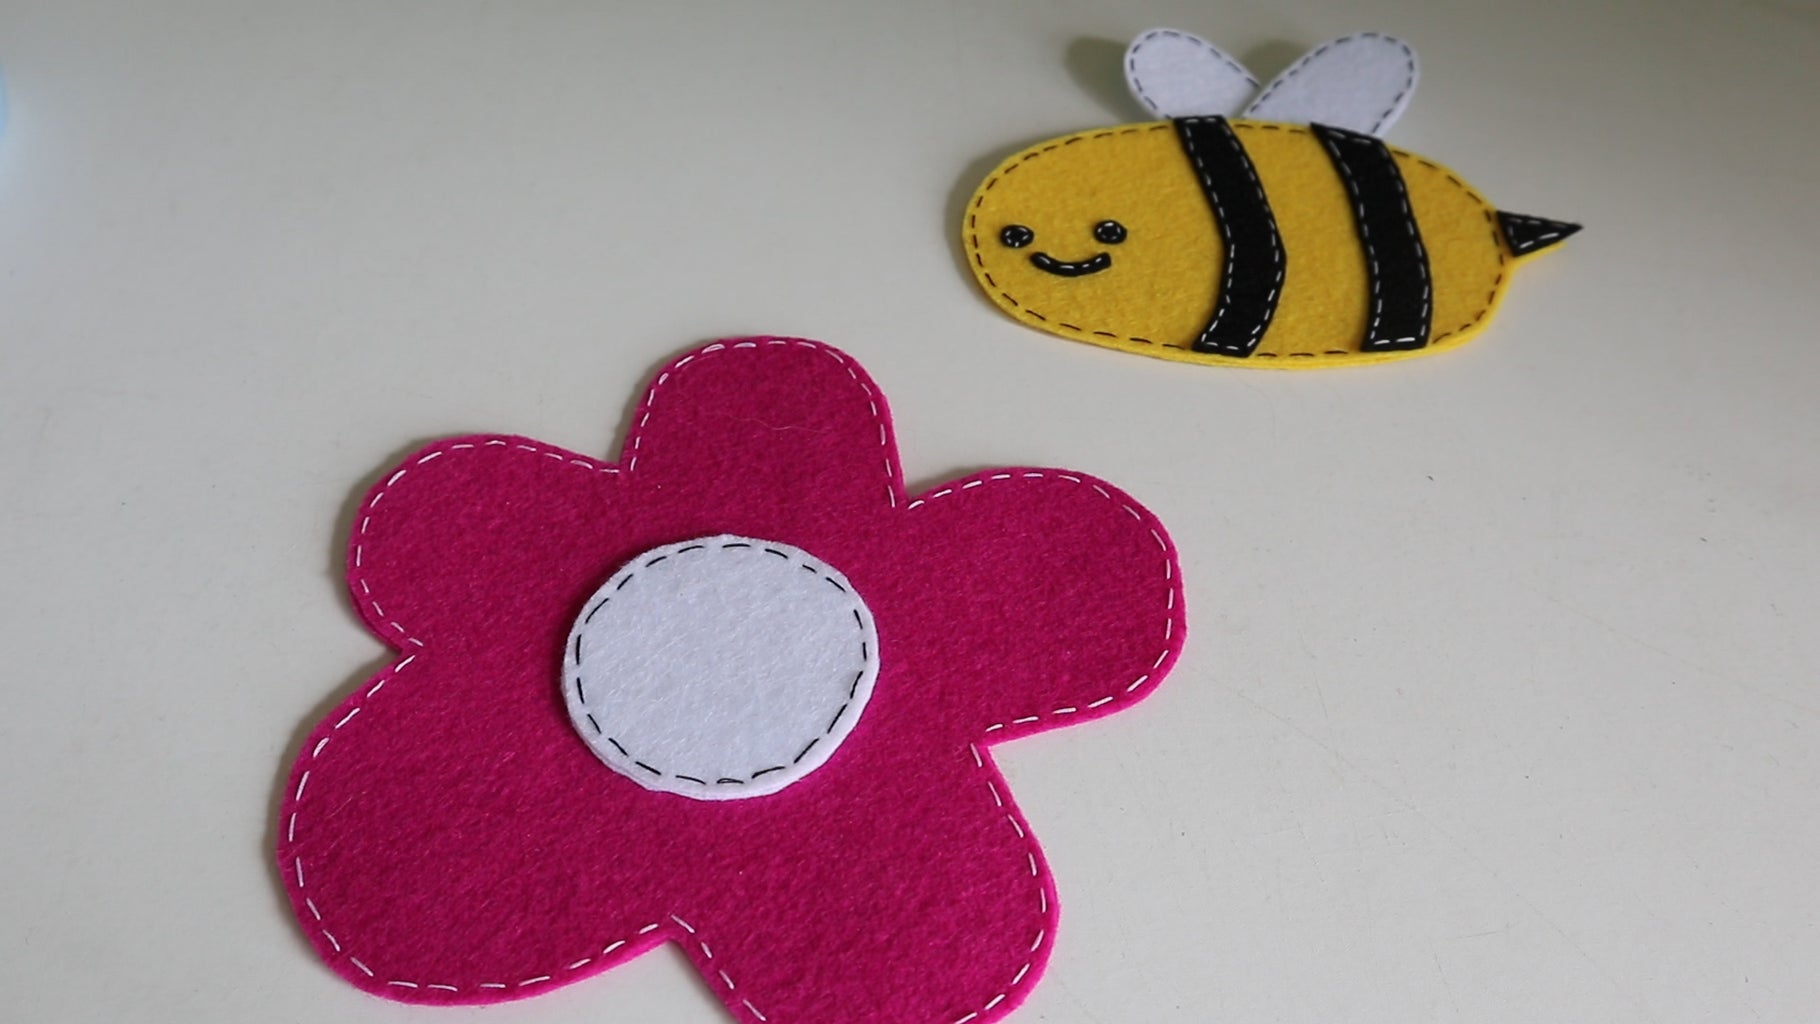 Sewing a Bumble Bee and Flower